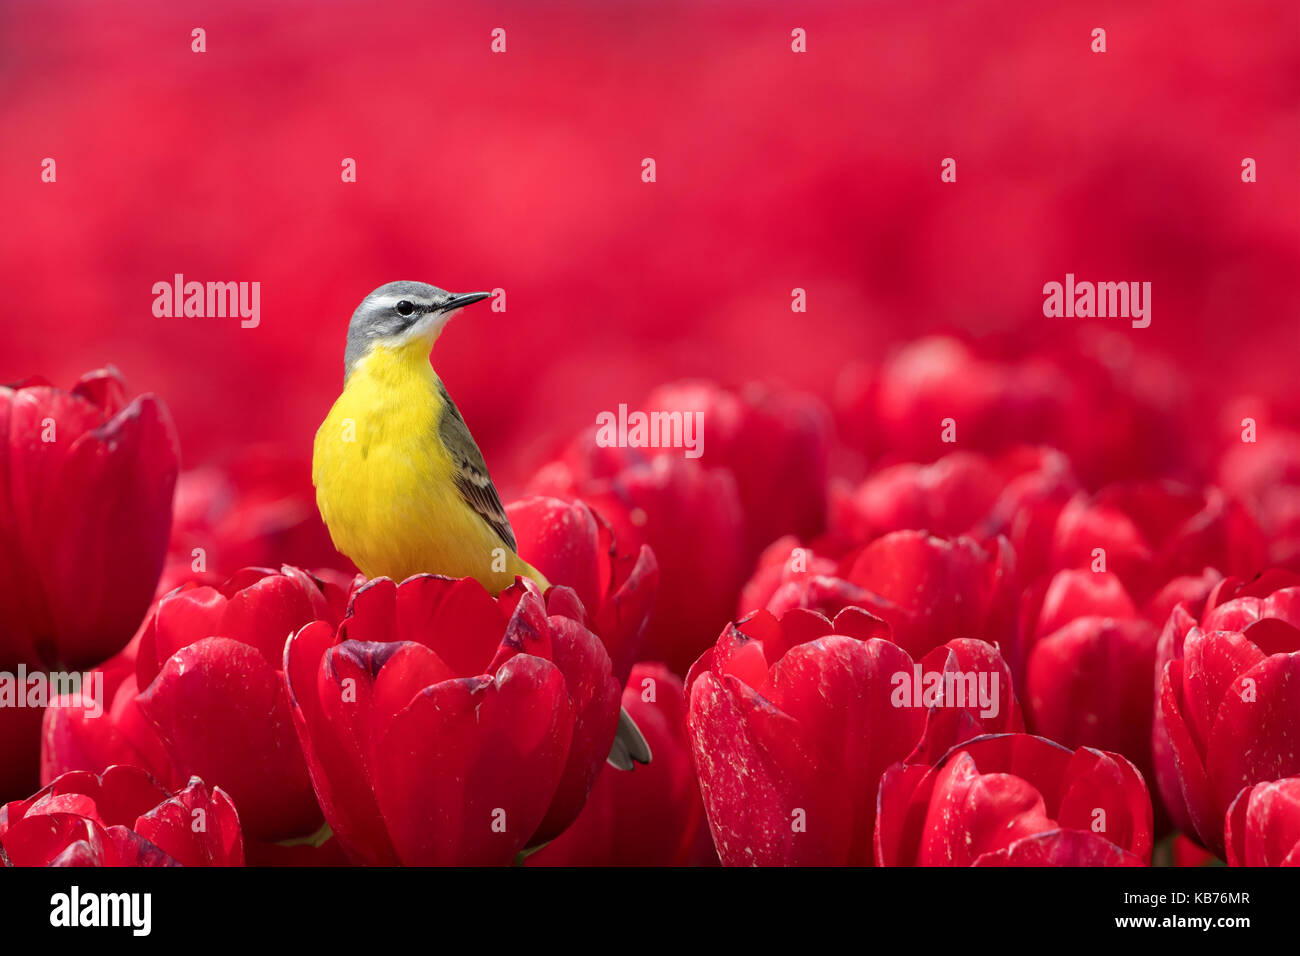 Yellow Wagtail (Motacilla flava) male in a field of red tulips, The Netherlands, Flevoland - Stock Image